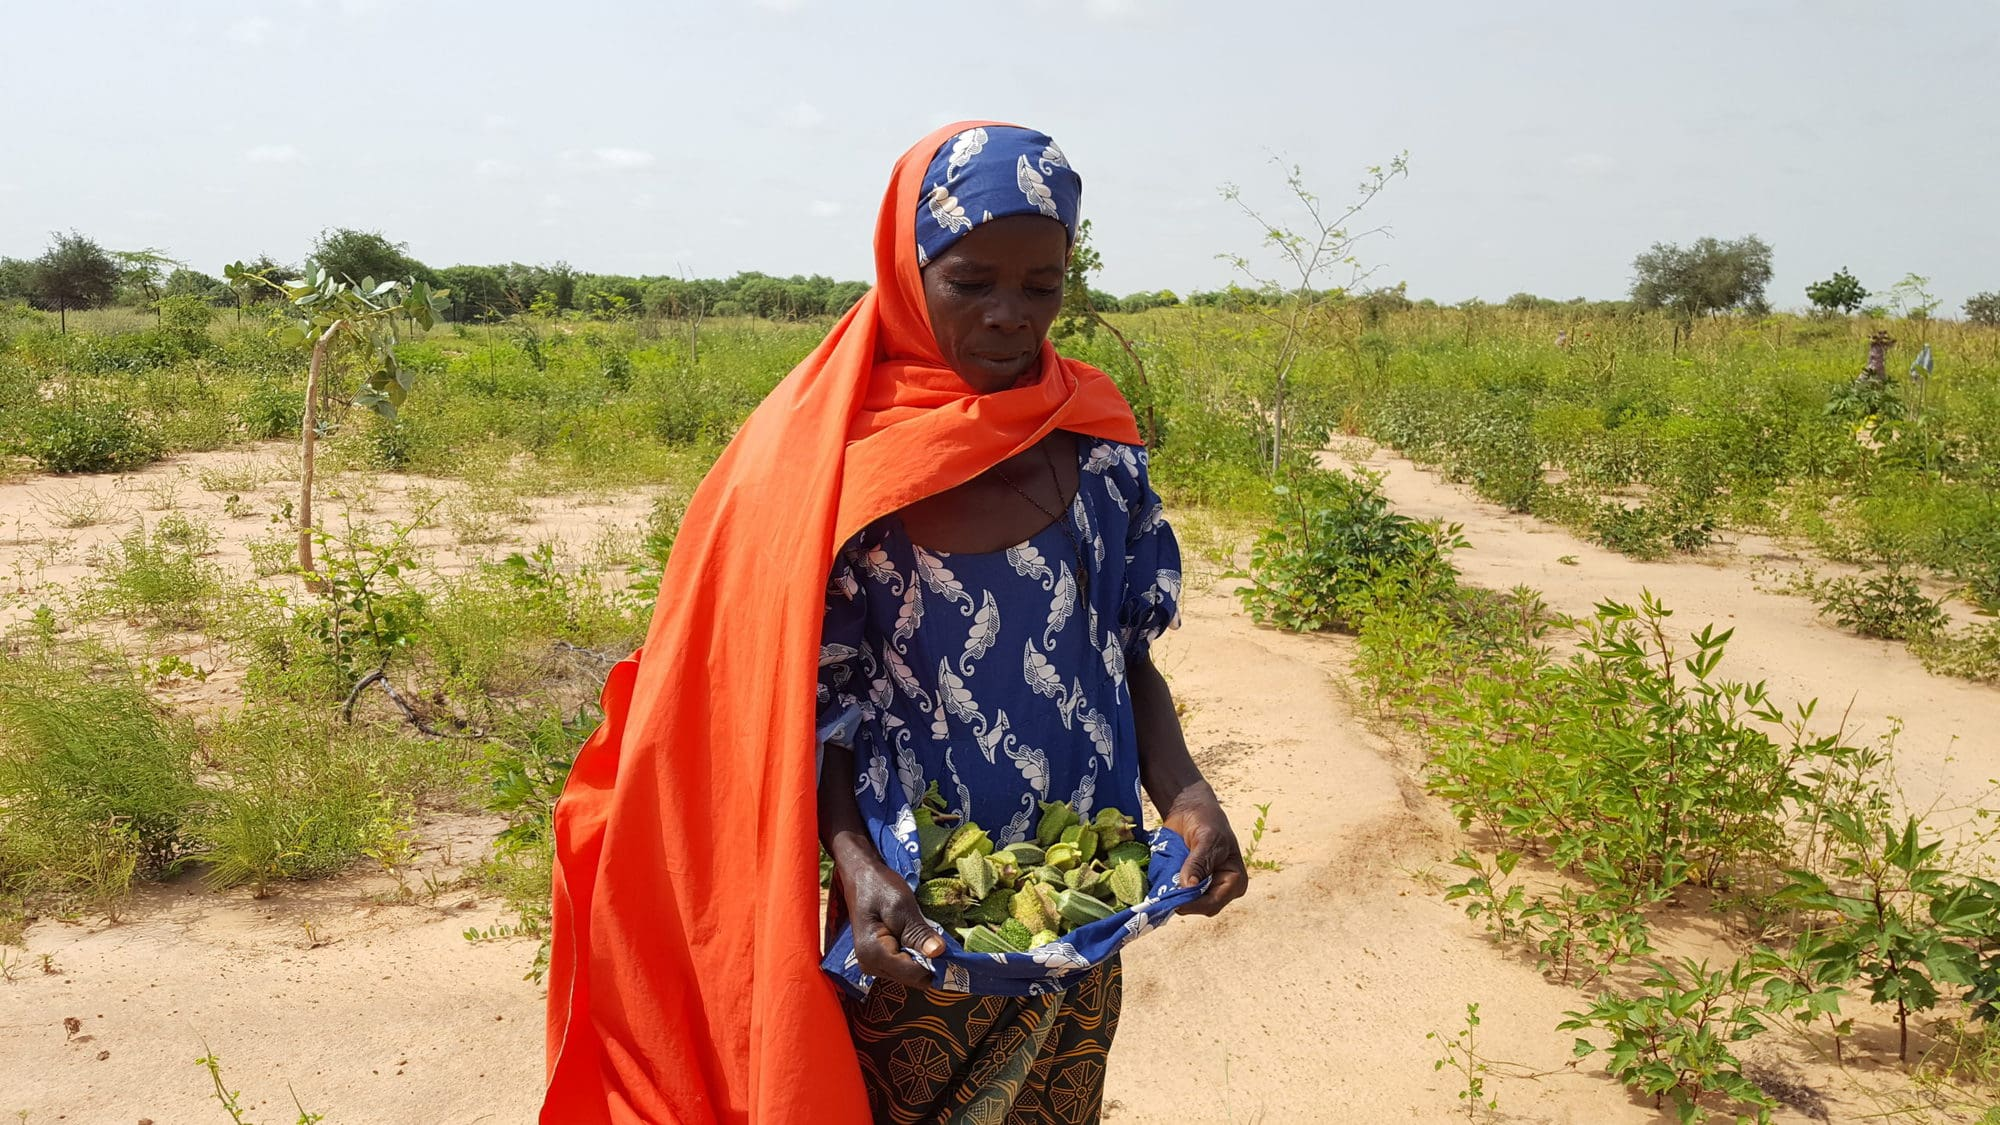 Bioreclamation to secure women's rights to land